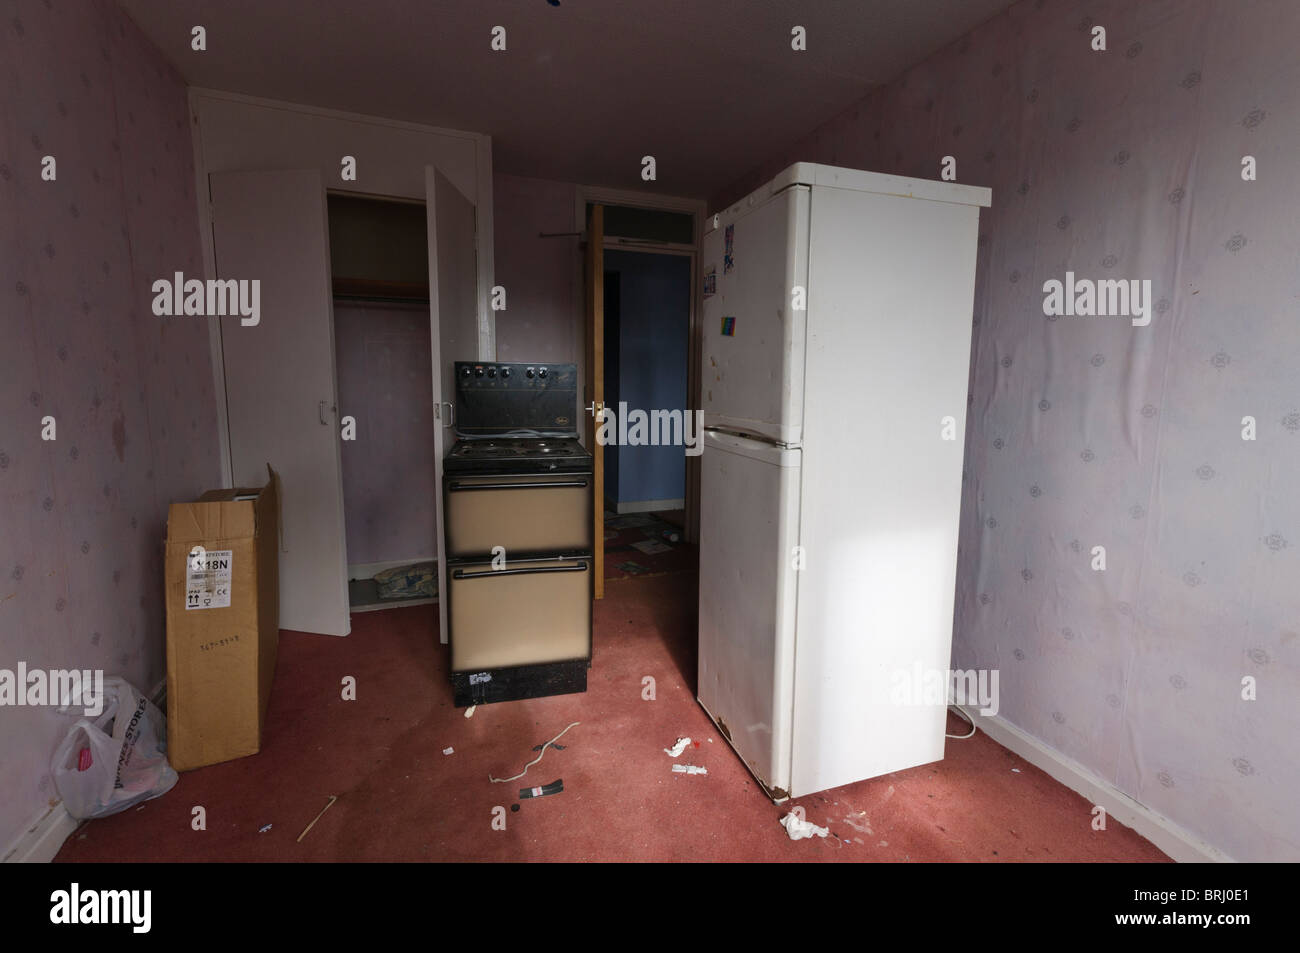 Kühlschrank Im Schlafzimmer Filthy Cooker Stockfotos And Filthy Cooker Bilder Alamy